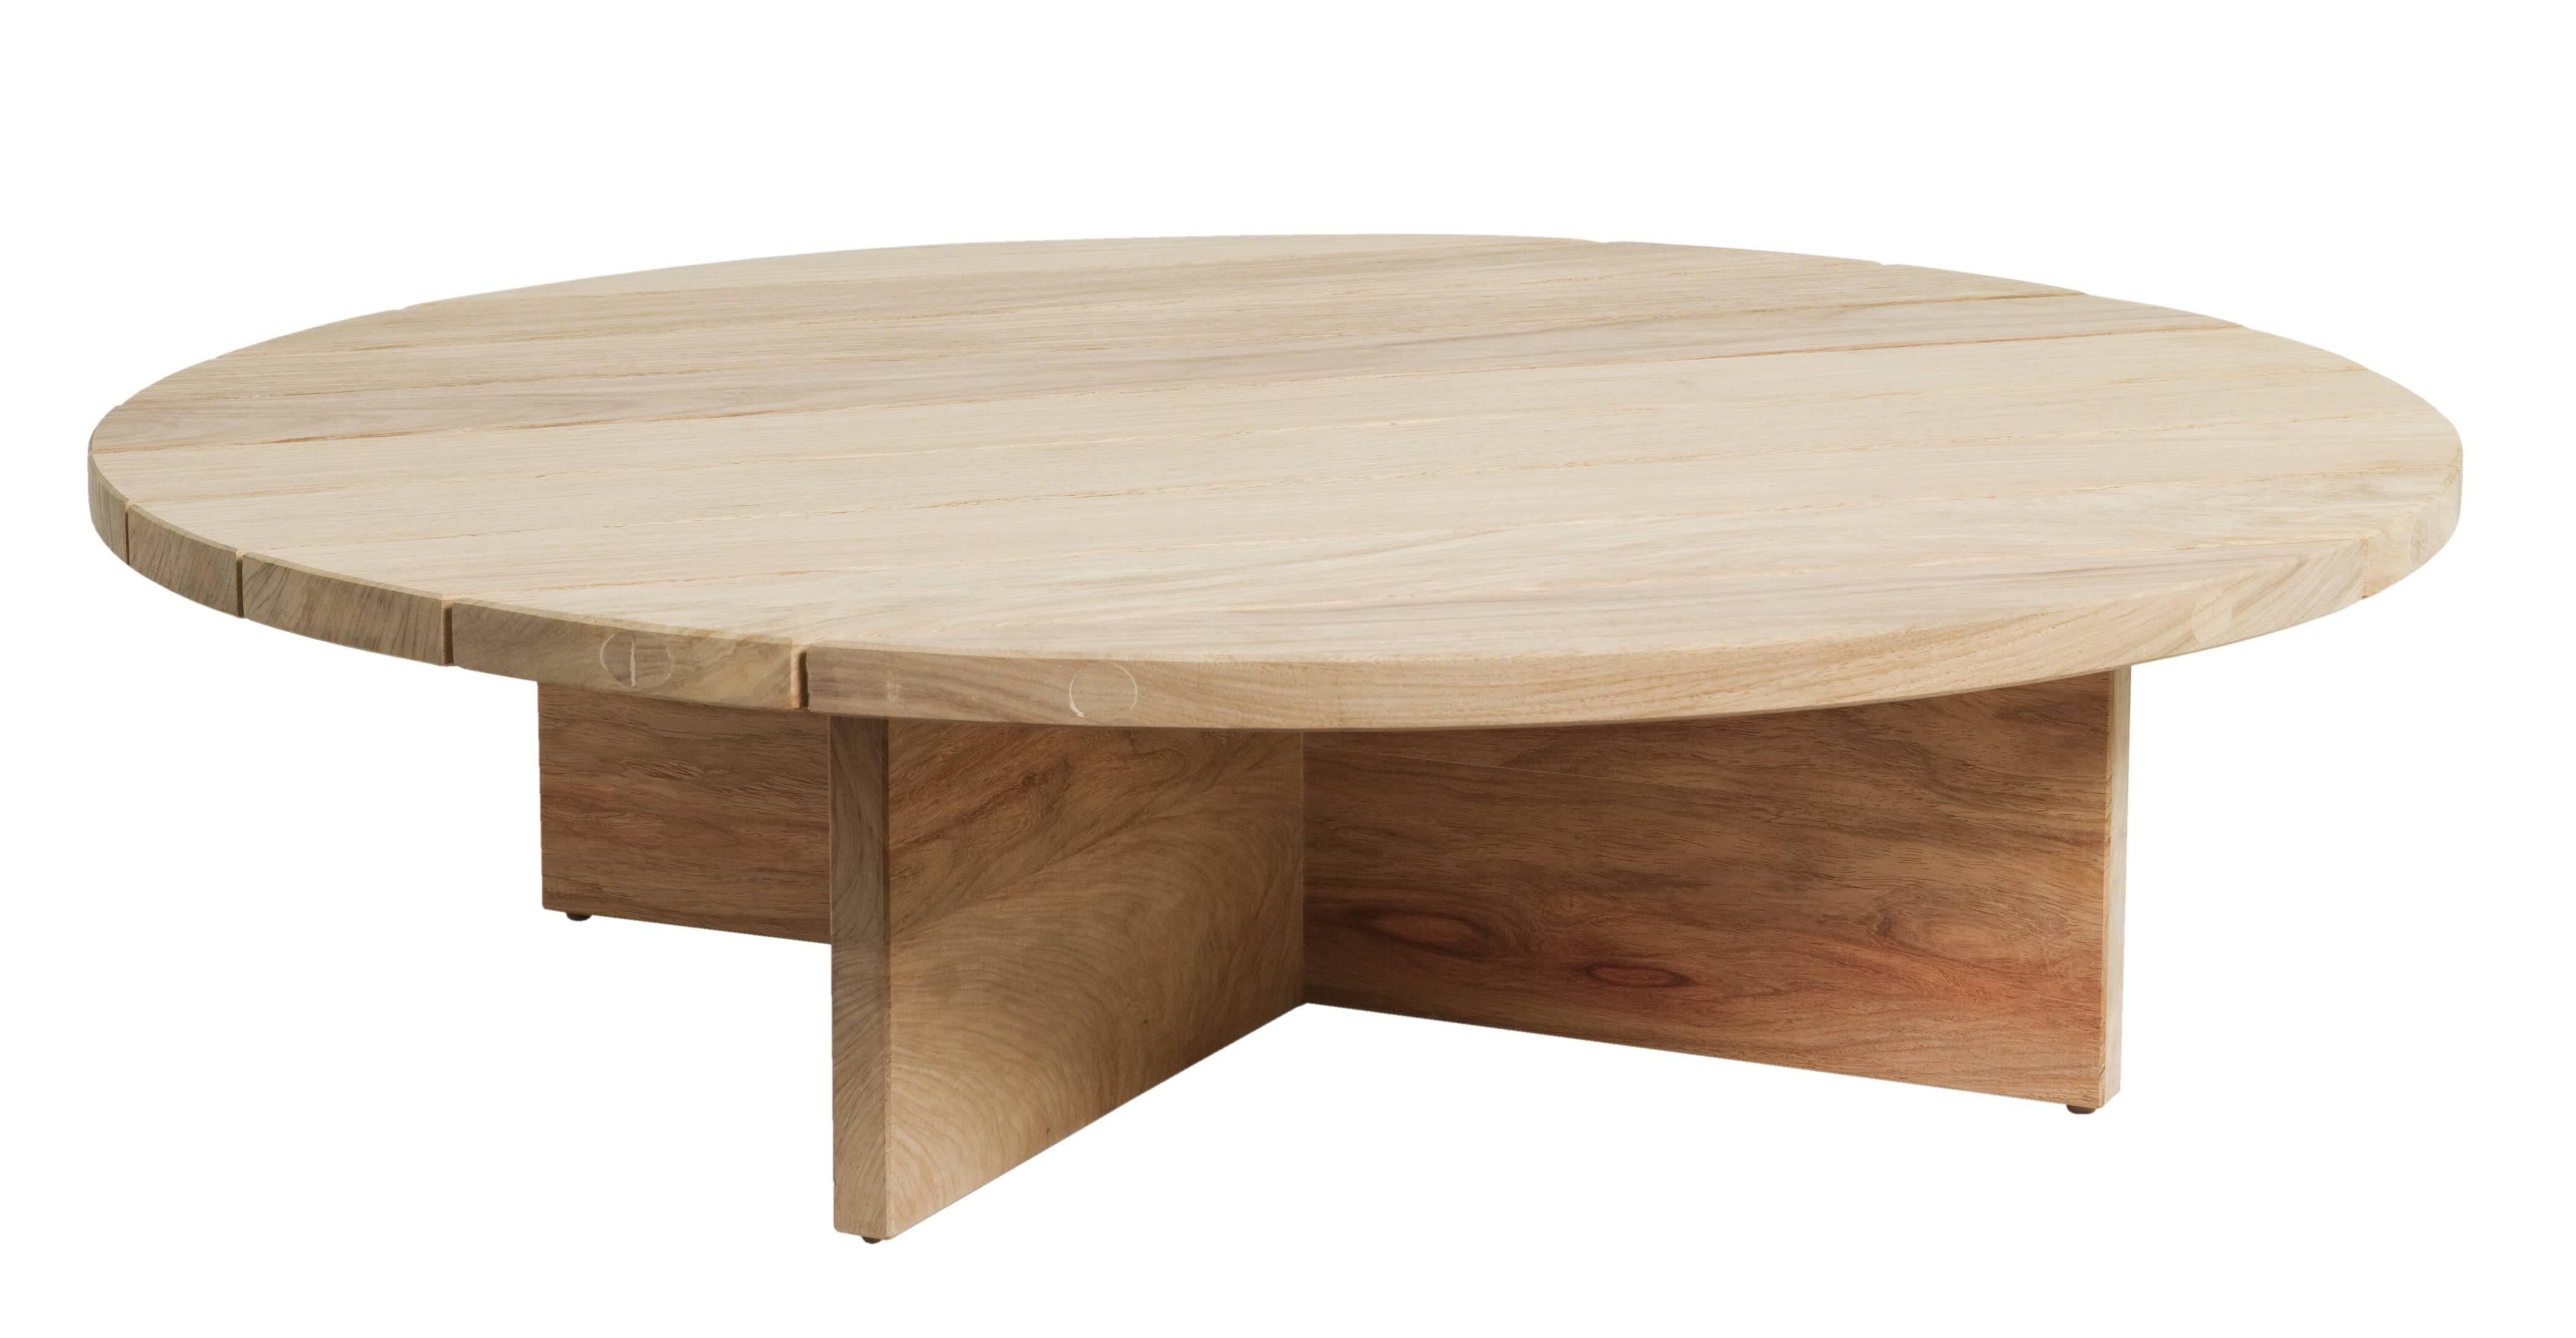 Wood Round Coffee Tables - Jericho Mafjar Project intended for Big Coffee Tables (Image 29 of 30)